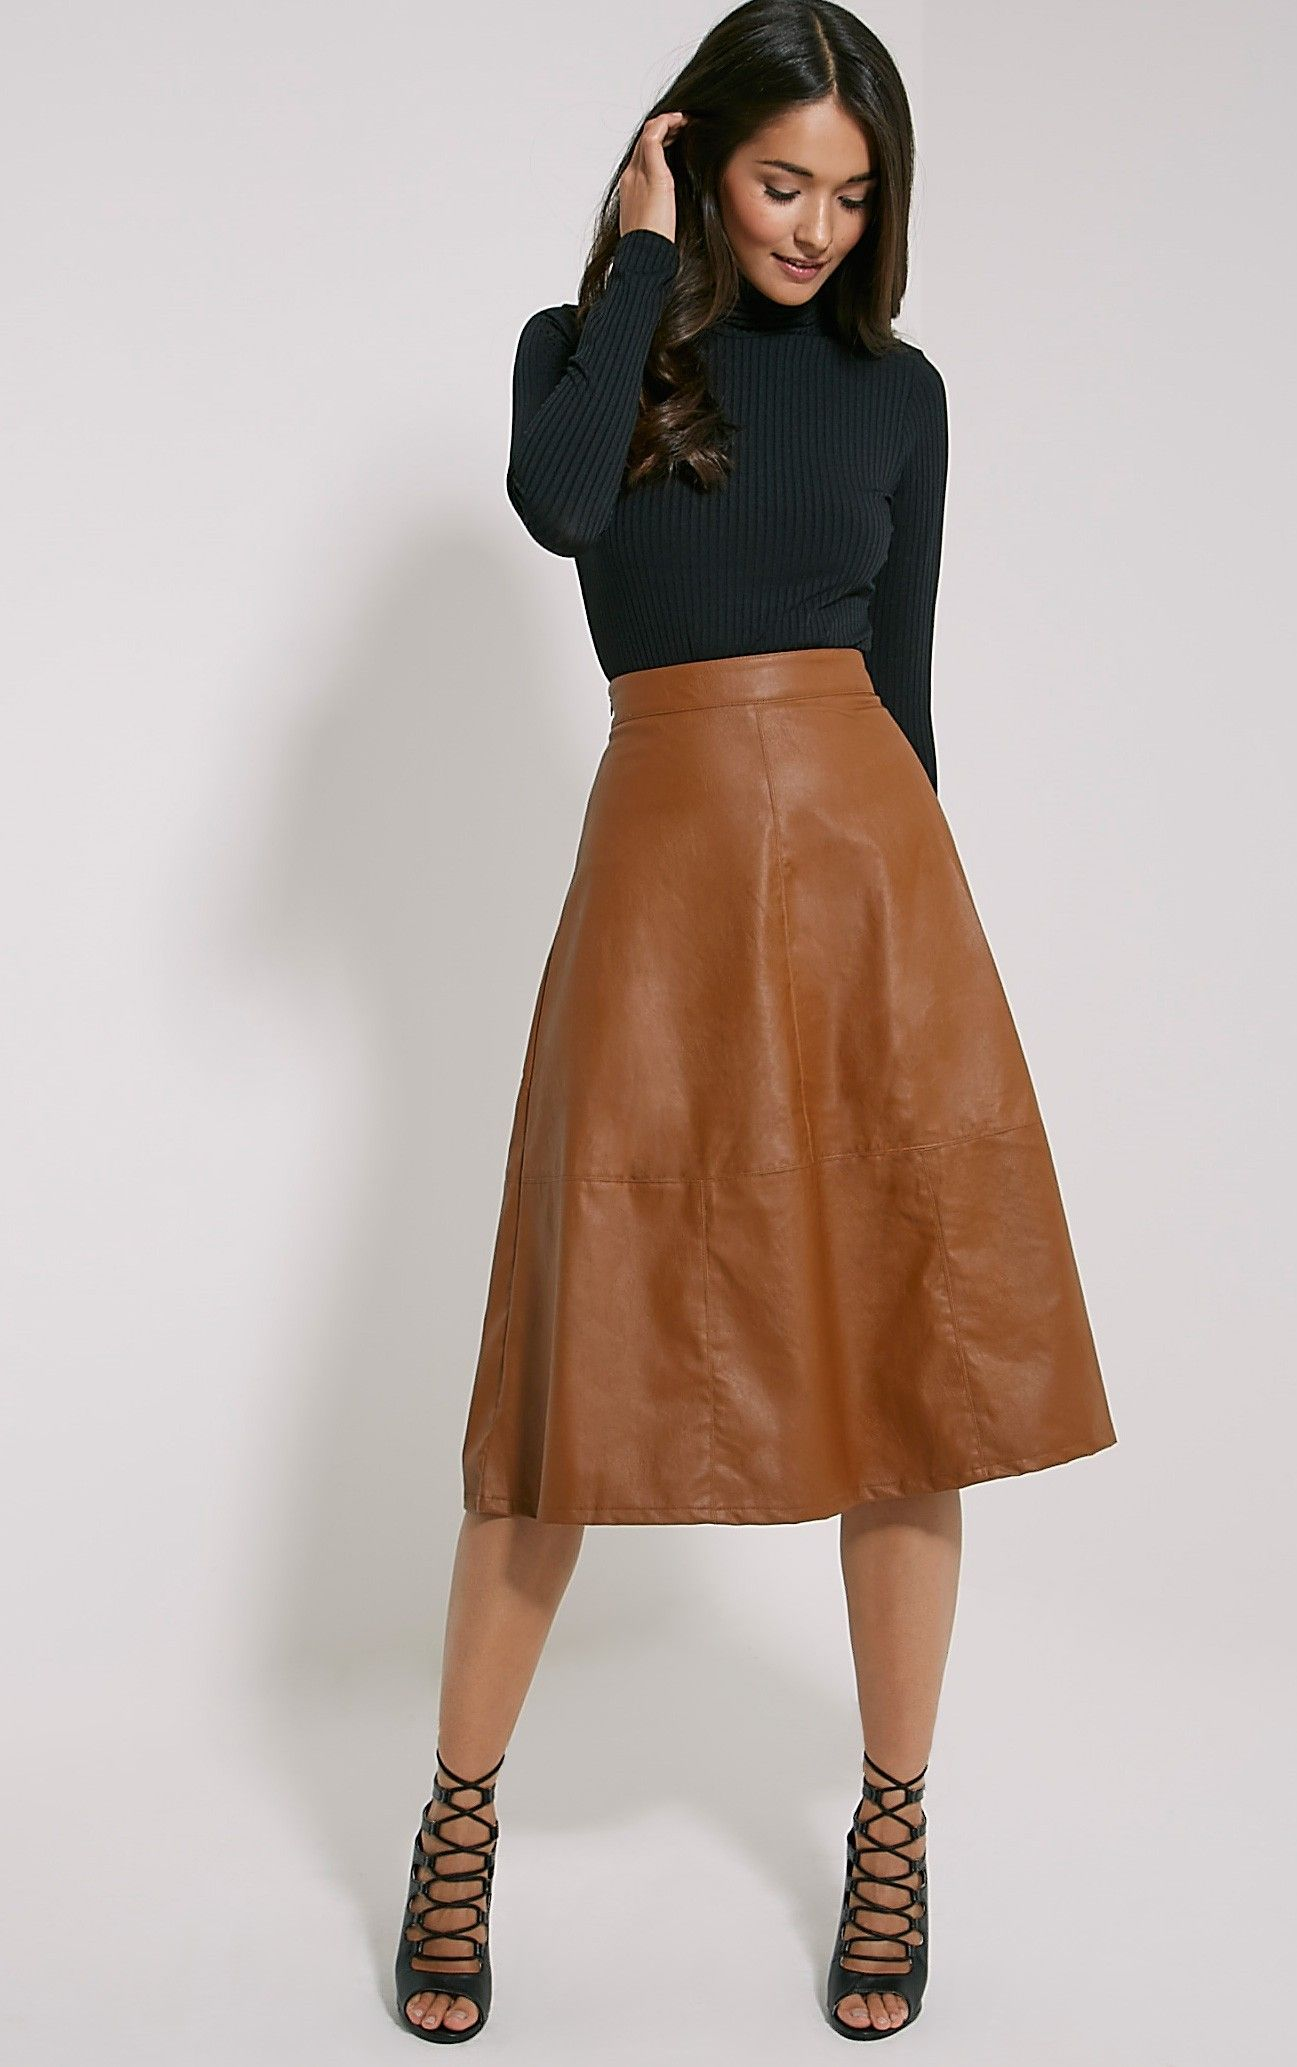 Trying to find an affordable leather or faux leather midi skirt ...